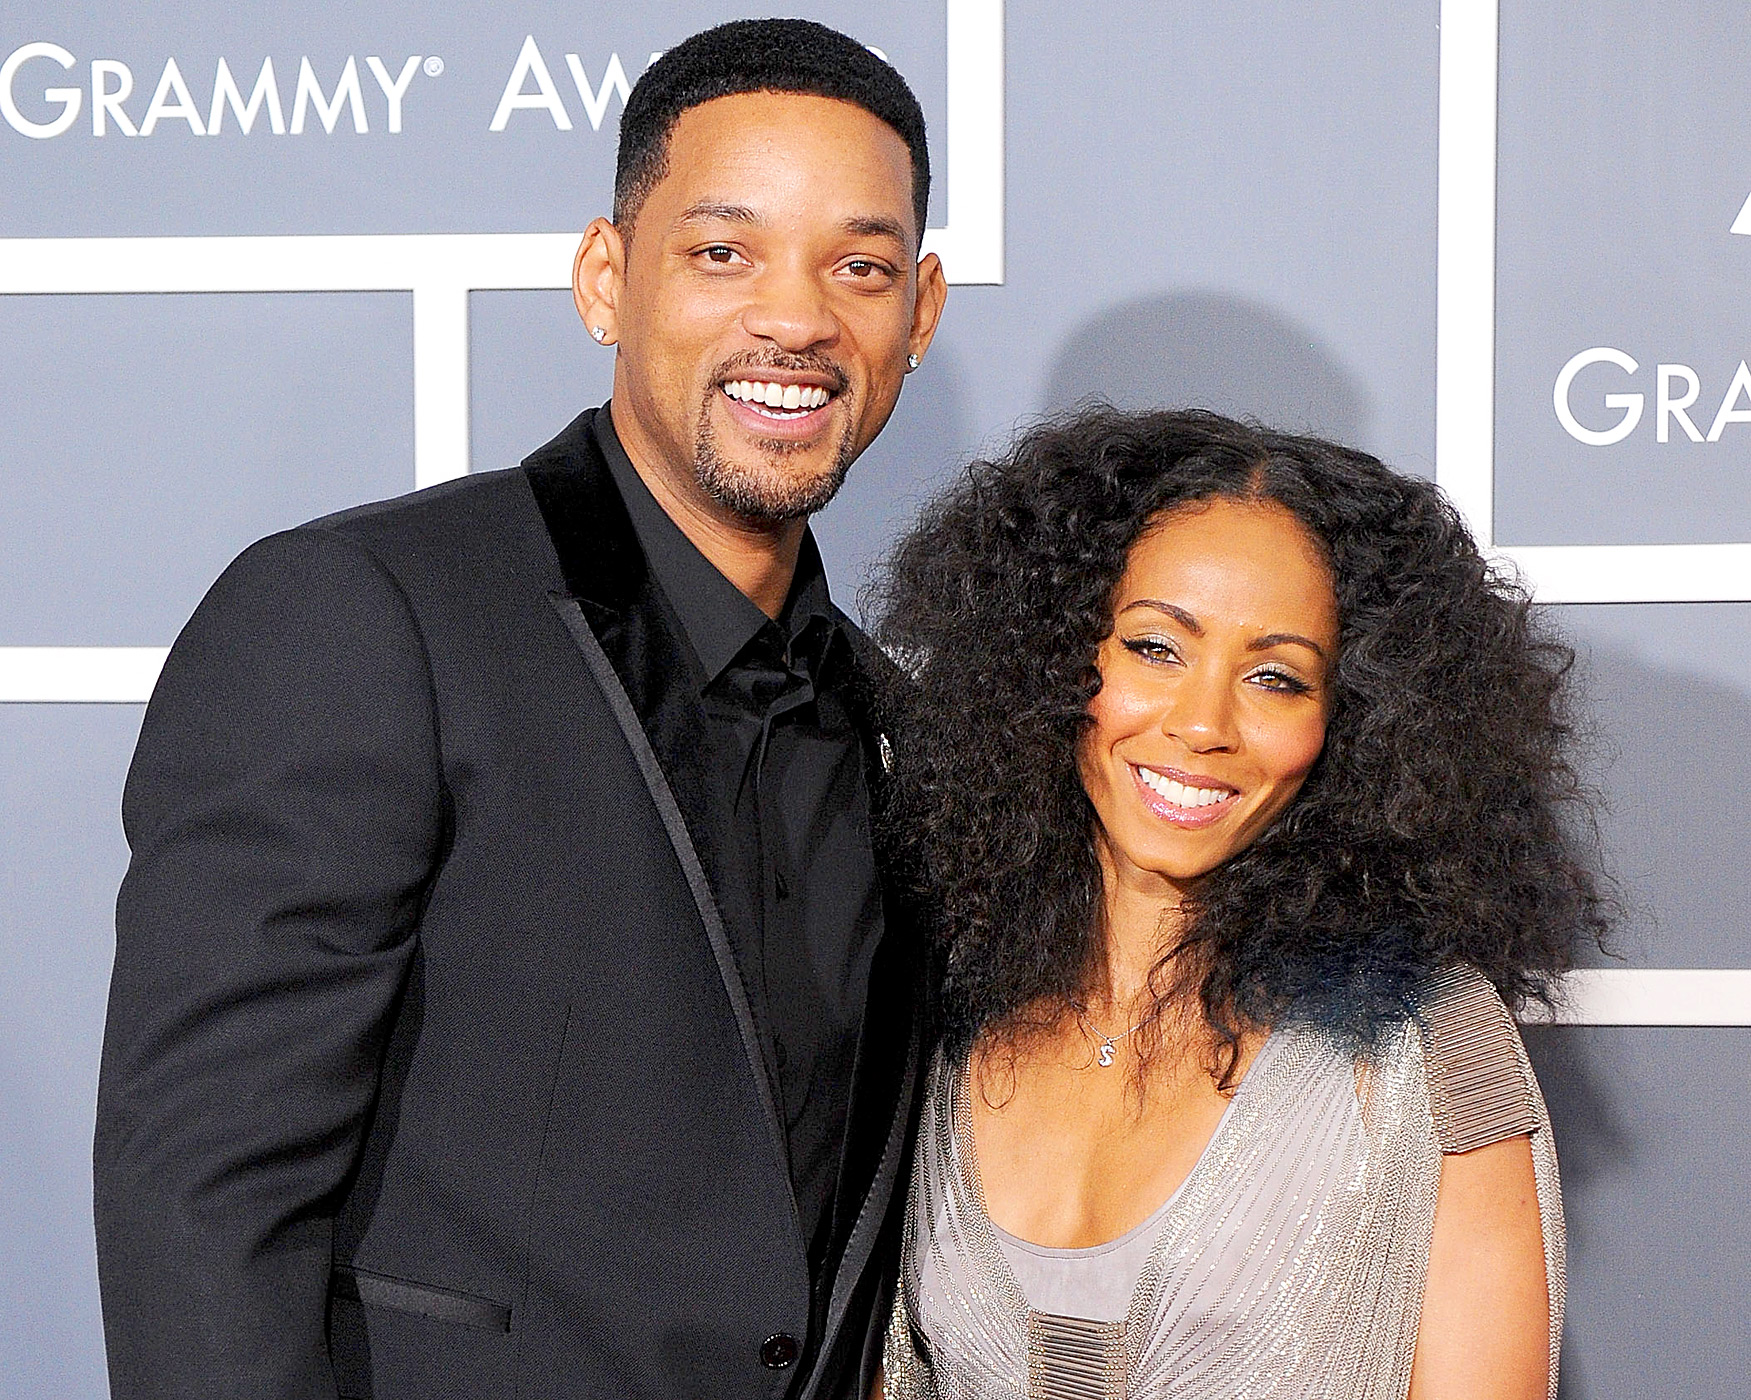 Jada Pickett Smith with her husband Will Smith